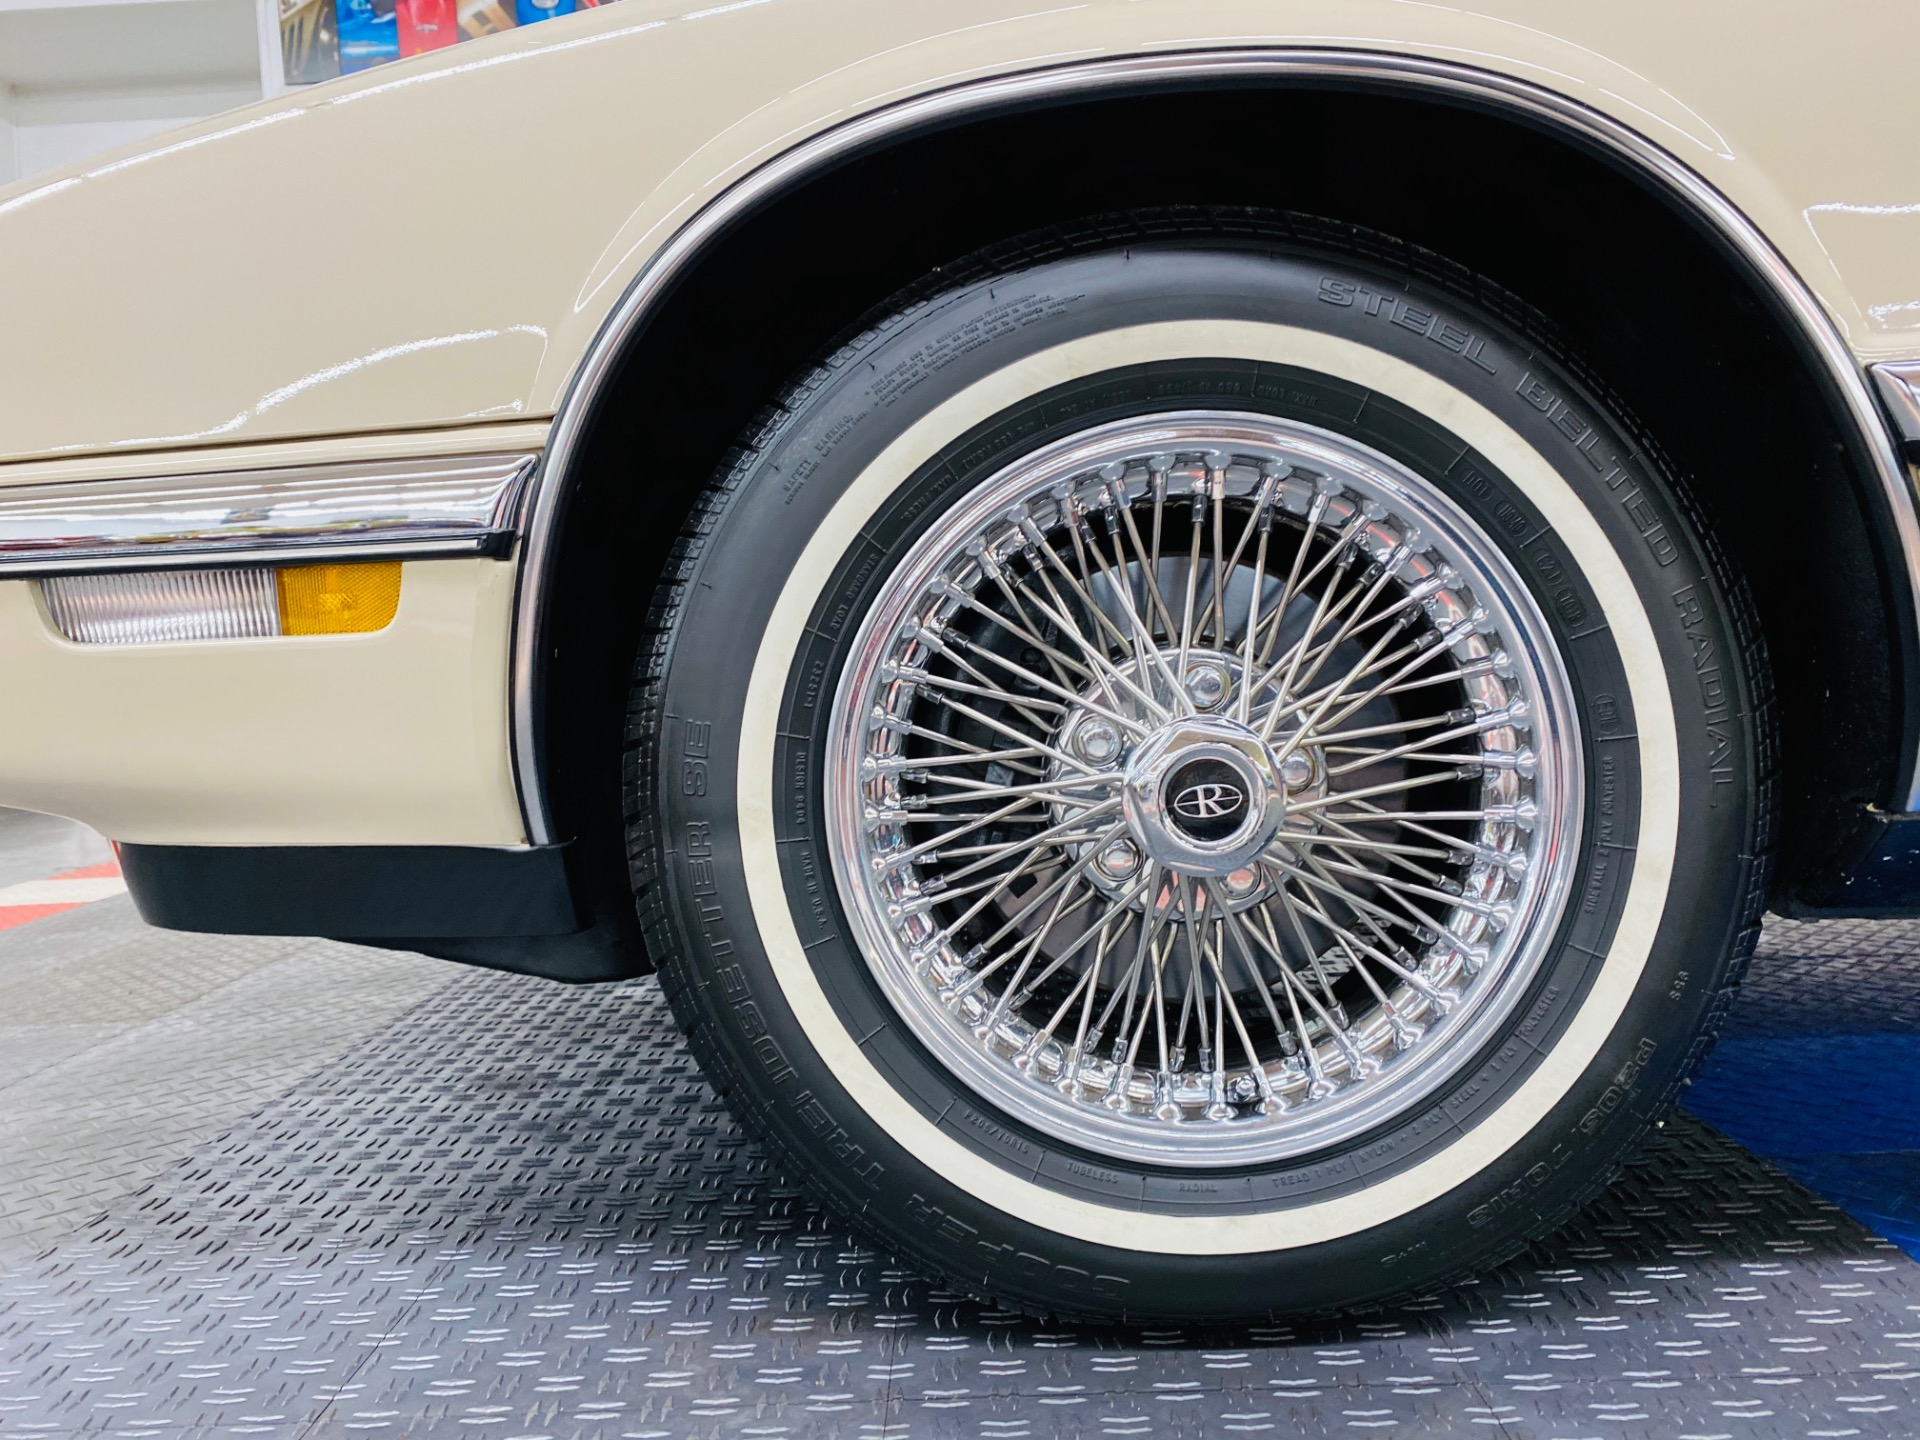 Used 1992 Buick Riviera - LIKE NEW CONDITION - FULL SERVICE RECORDS - SUPER CLEAN - SEE VIDEO -   Mundelein, IL